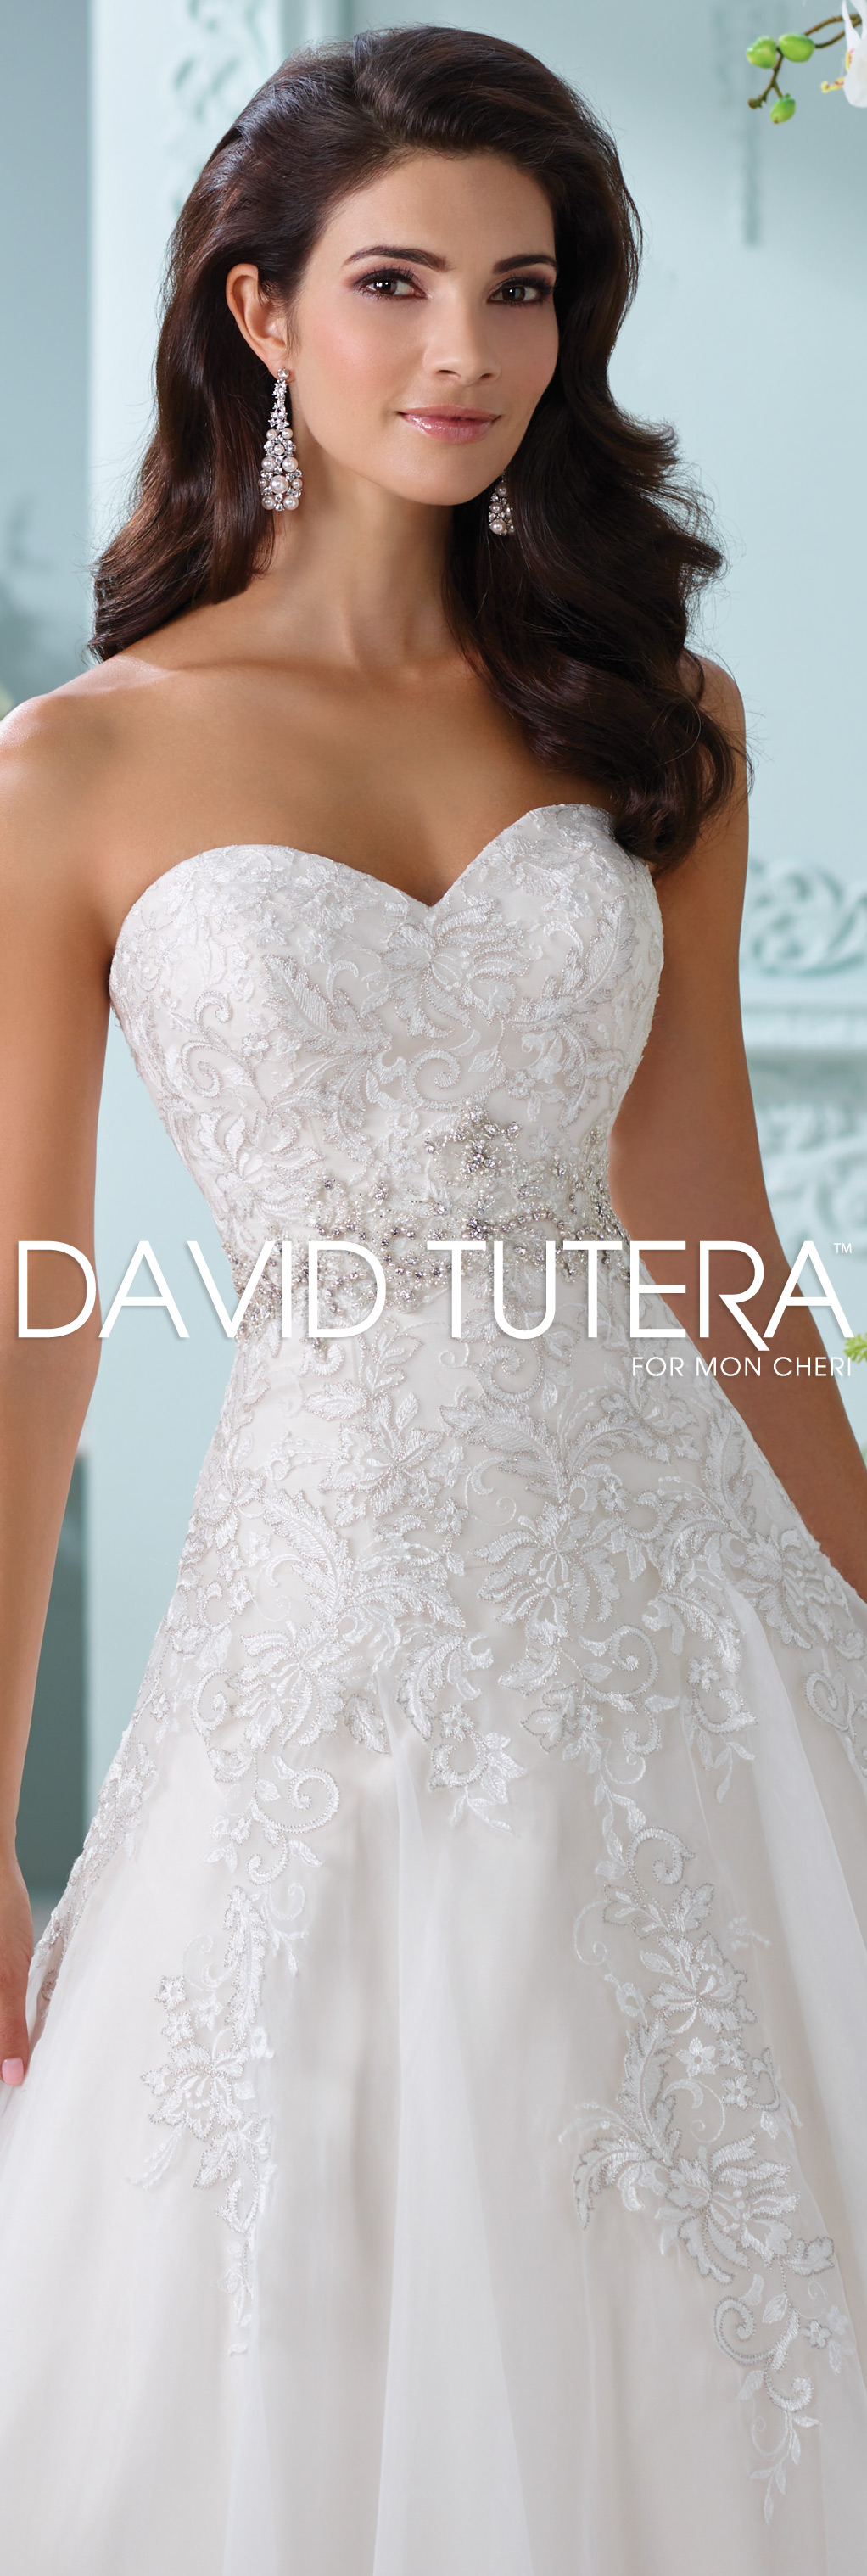 Unique wedding dresses spring martin thornburg david tutera